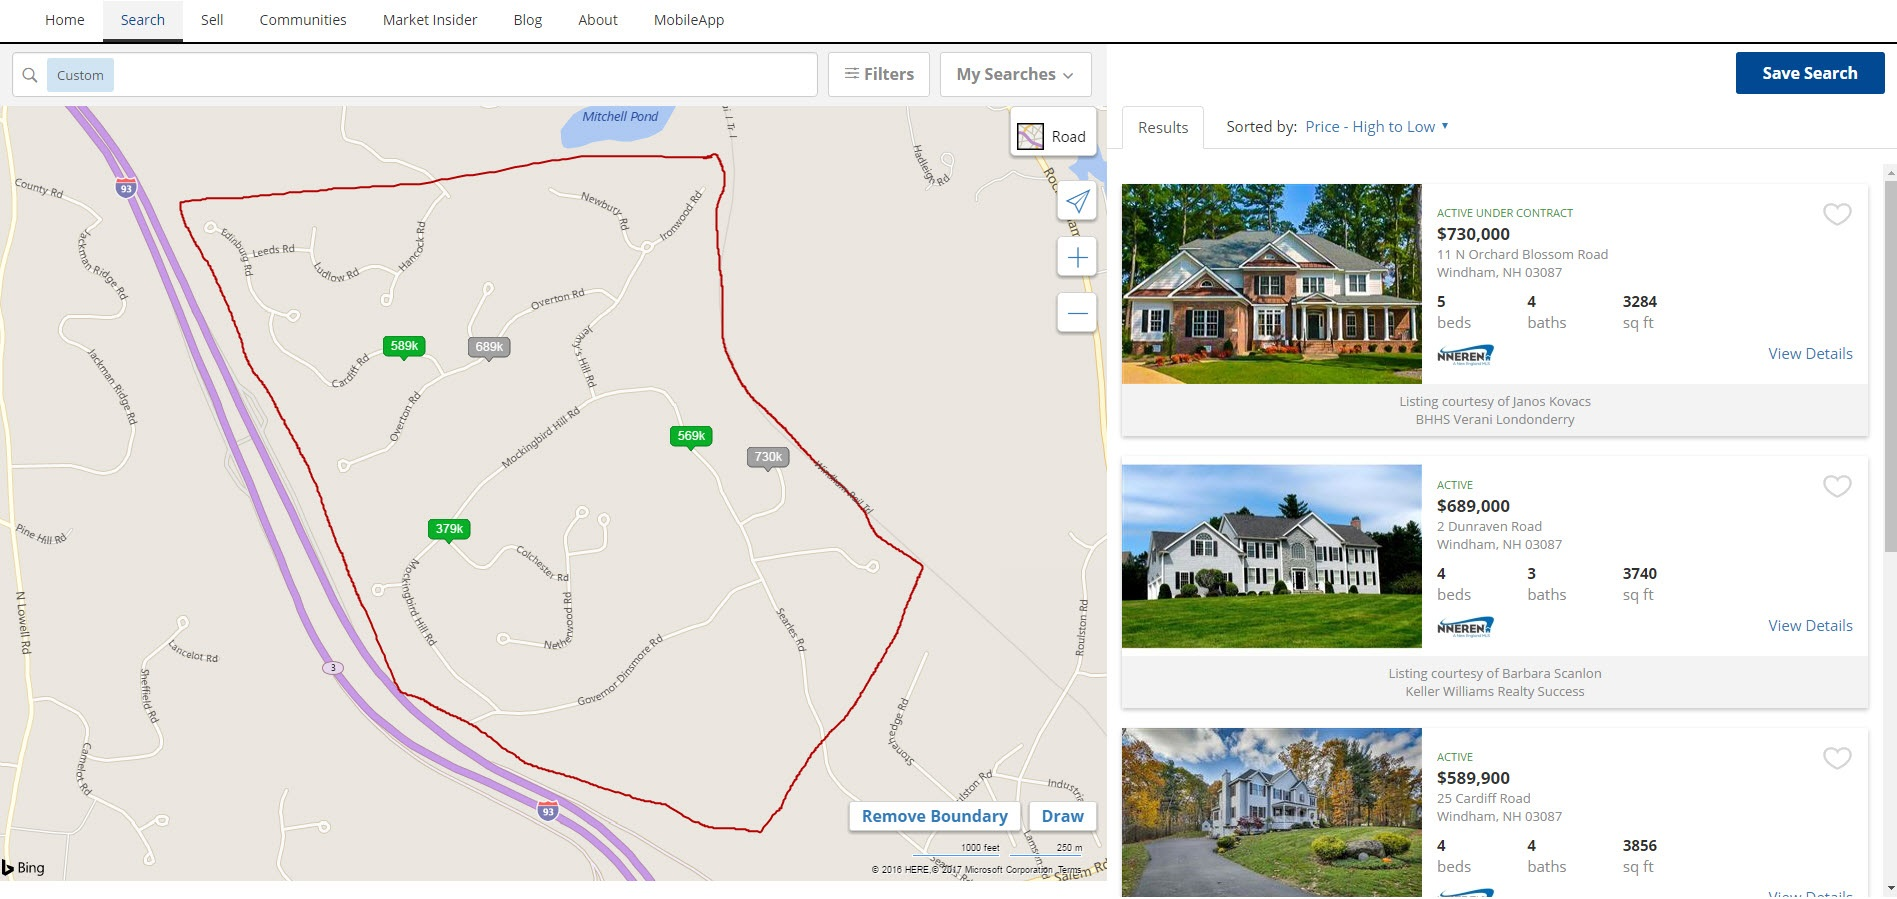 Map Search screen capture